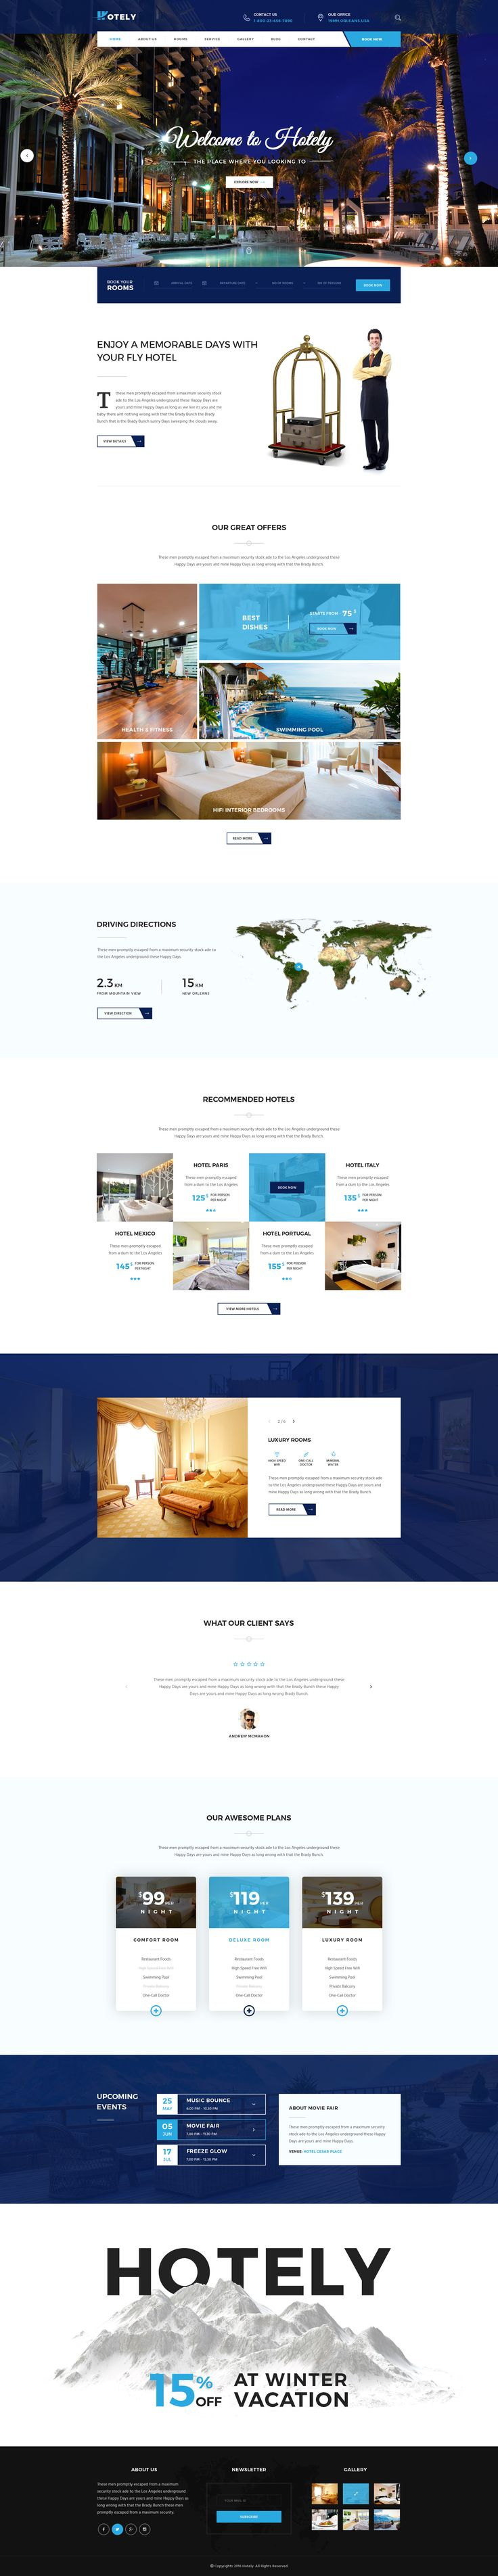 Hotely Hotel Booking & Travel PSD Template - Download theme here : http://themeforest.net/item/hotely-hotel-booking-travel-psd-template/16143680?ref=pxcr